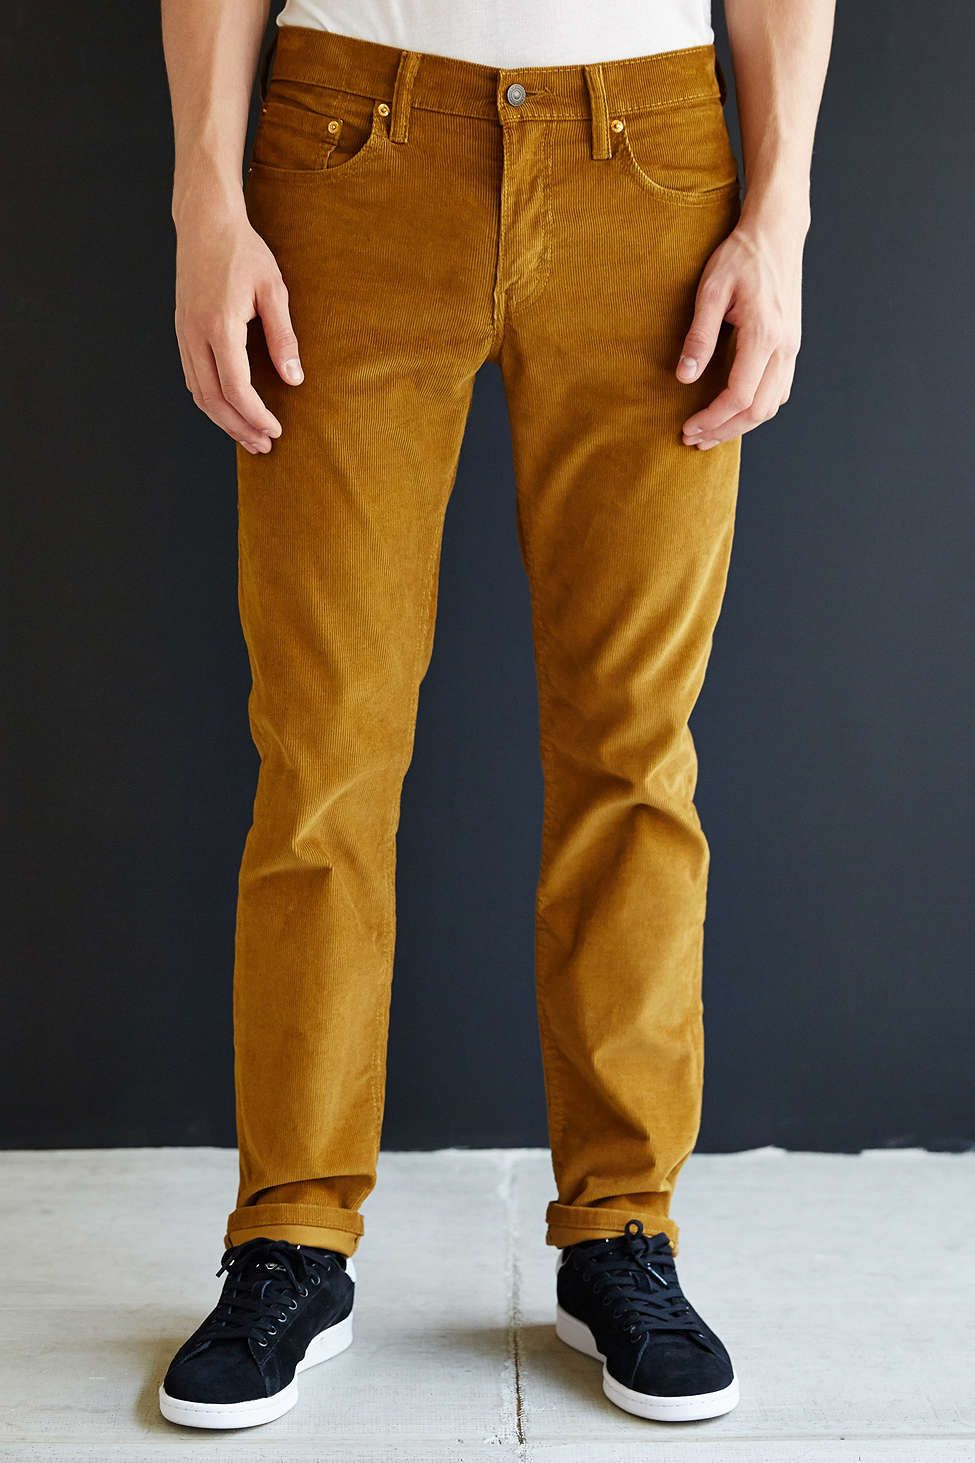 The corduroy pants men crave effortlessly add class to any casual look. Men's cord pants can be paired with any tops such as sweaters, polos, button downs, and more. With such great versatility, men's corduroy pants will quickly become your favorites for everyday wear.